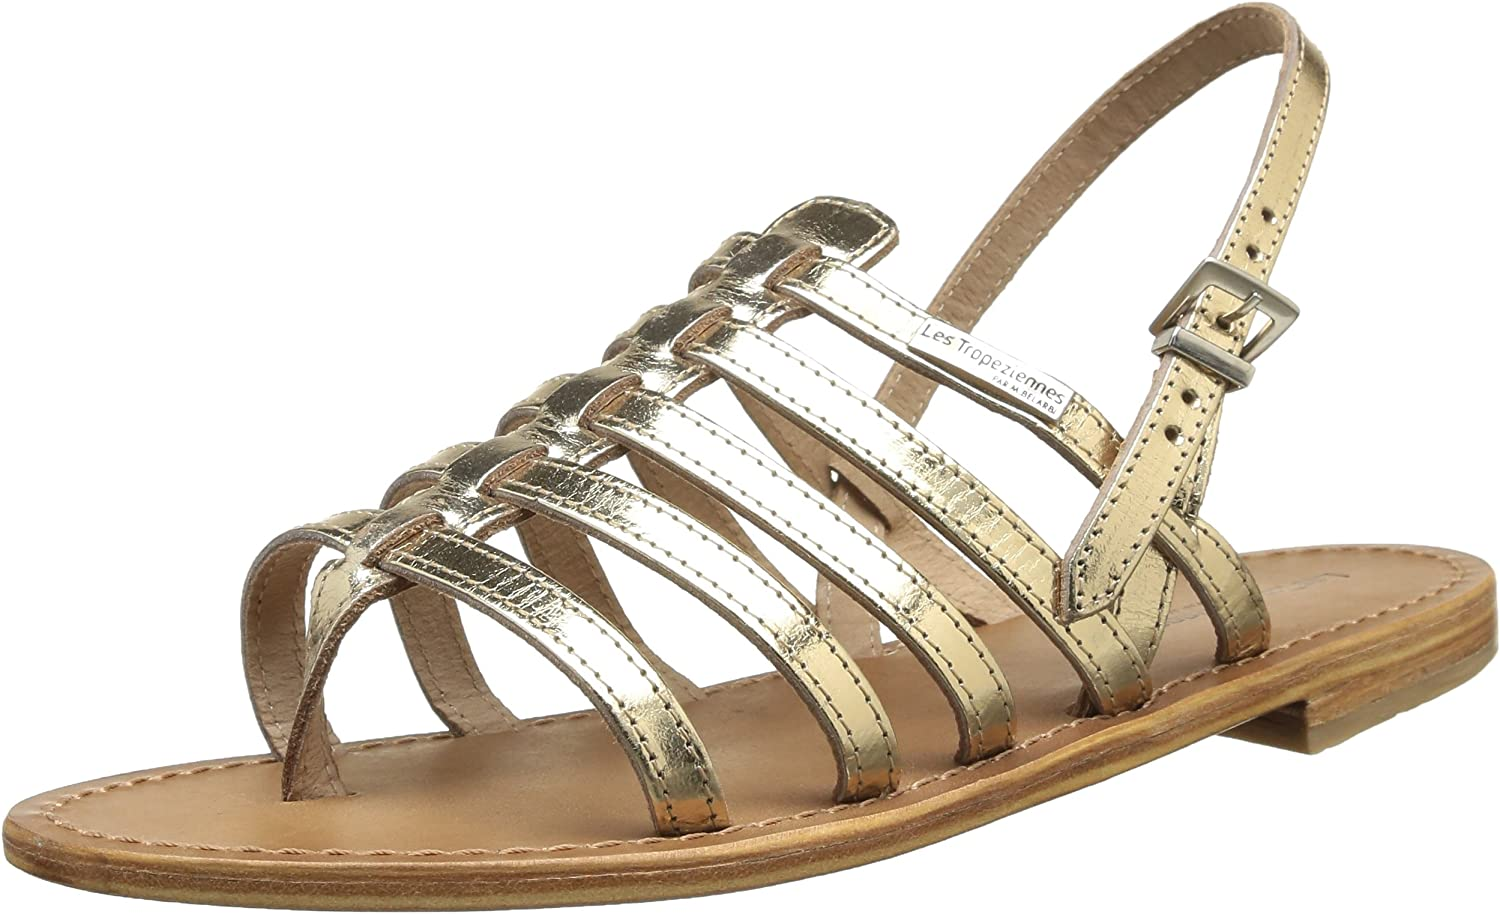 Womens Herisson Leather Strappy Gladiator Sandals